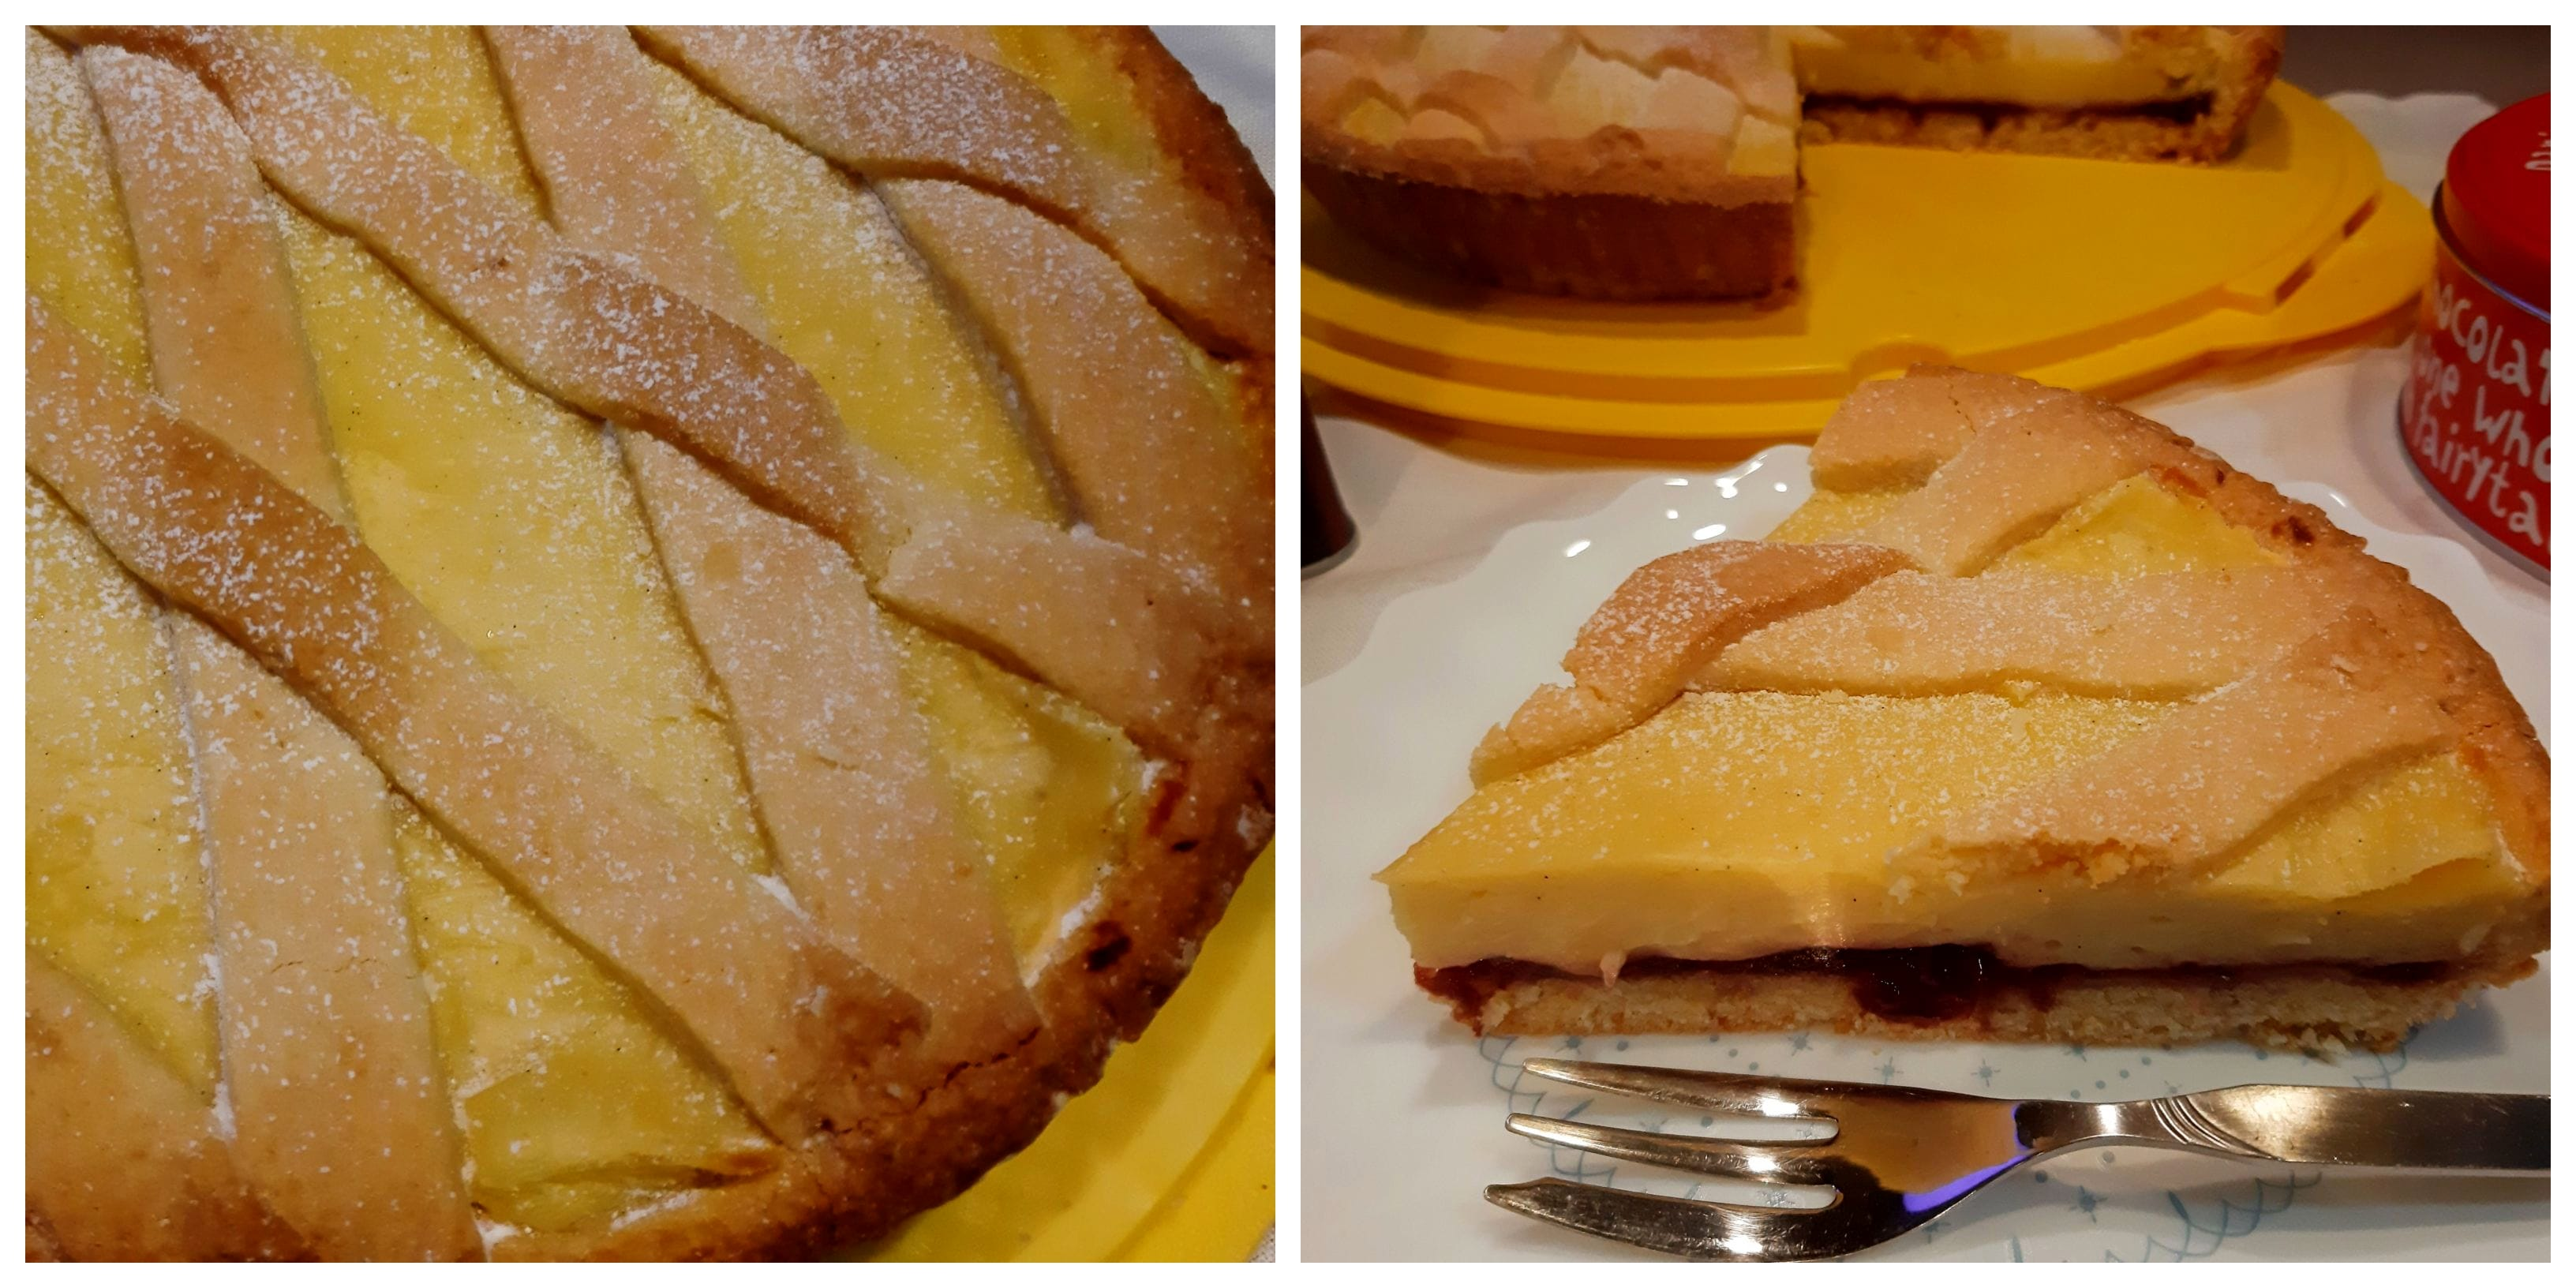 crostata limone box1@VG-2